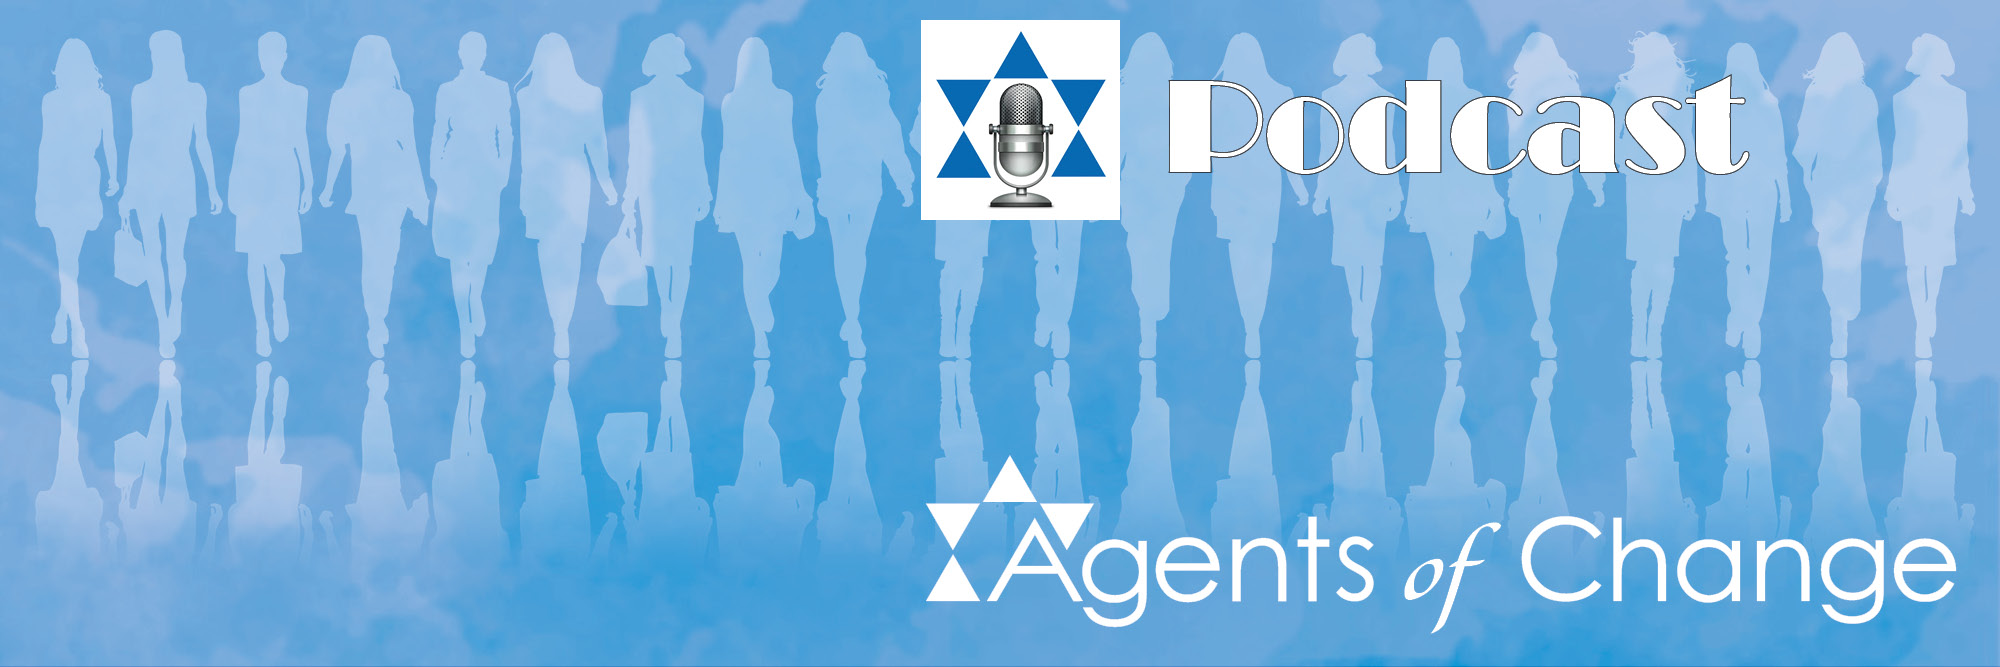 All 4 of our Agents of Change podcasts are now available